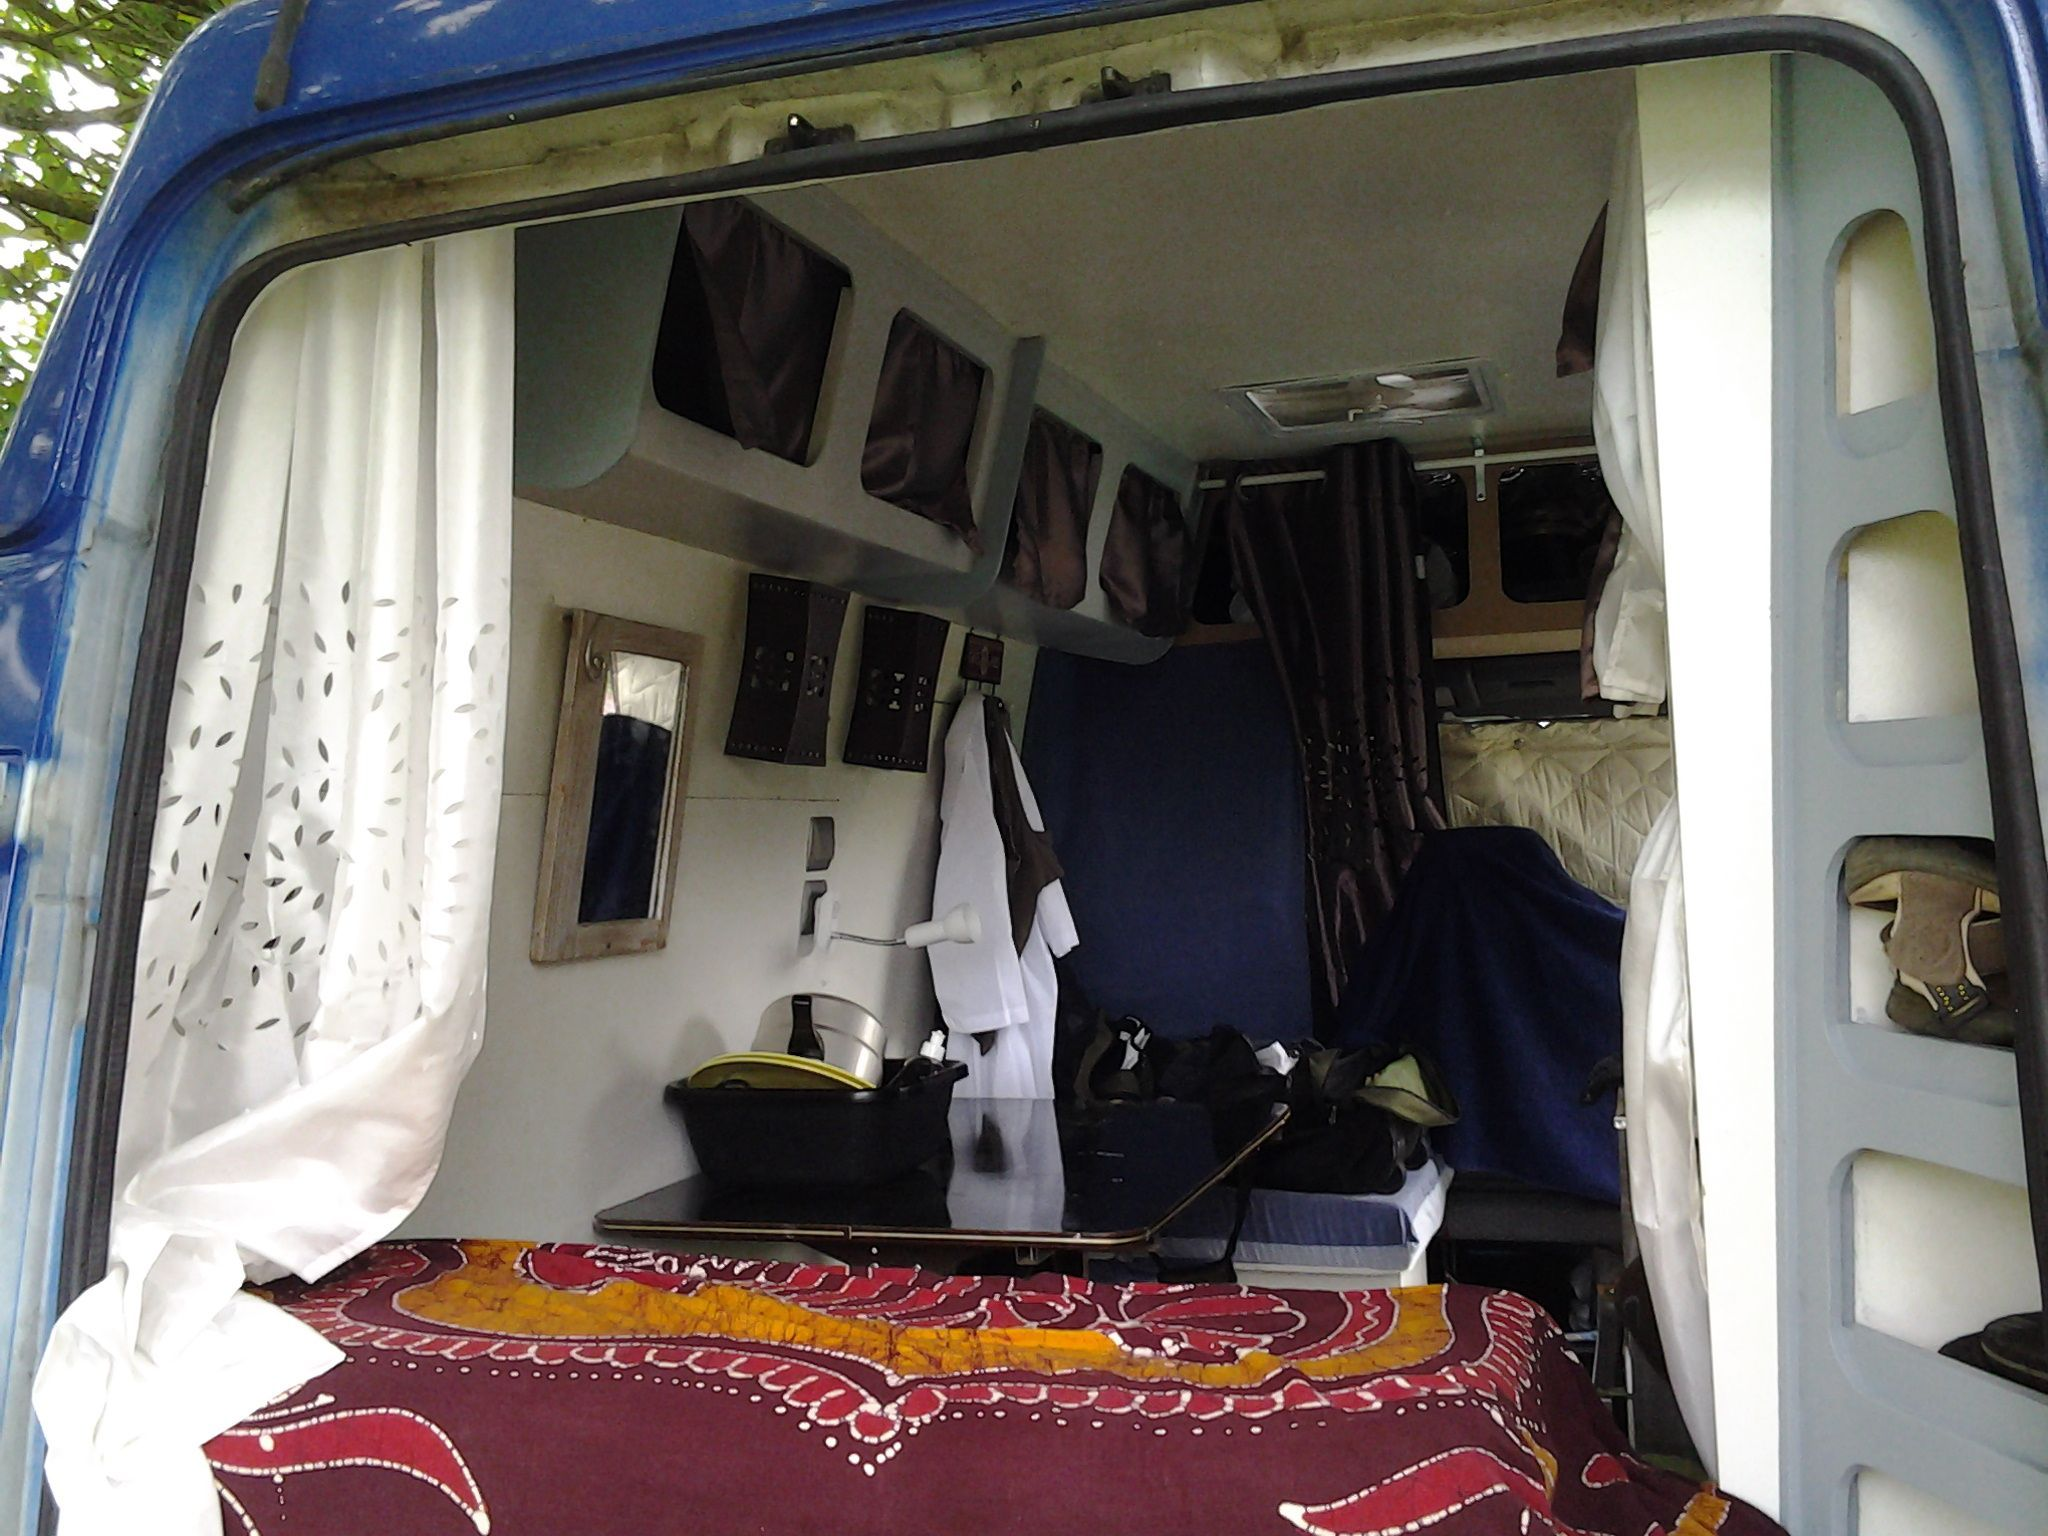 Interieur Camping Car Reamenagement Interieur Renault Trafic Page 4